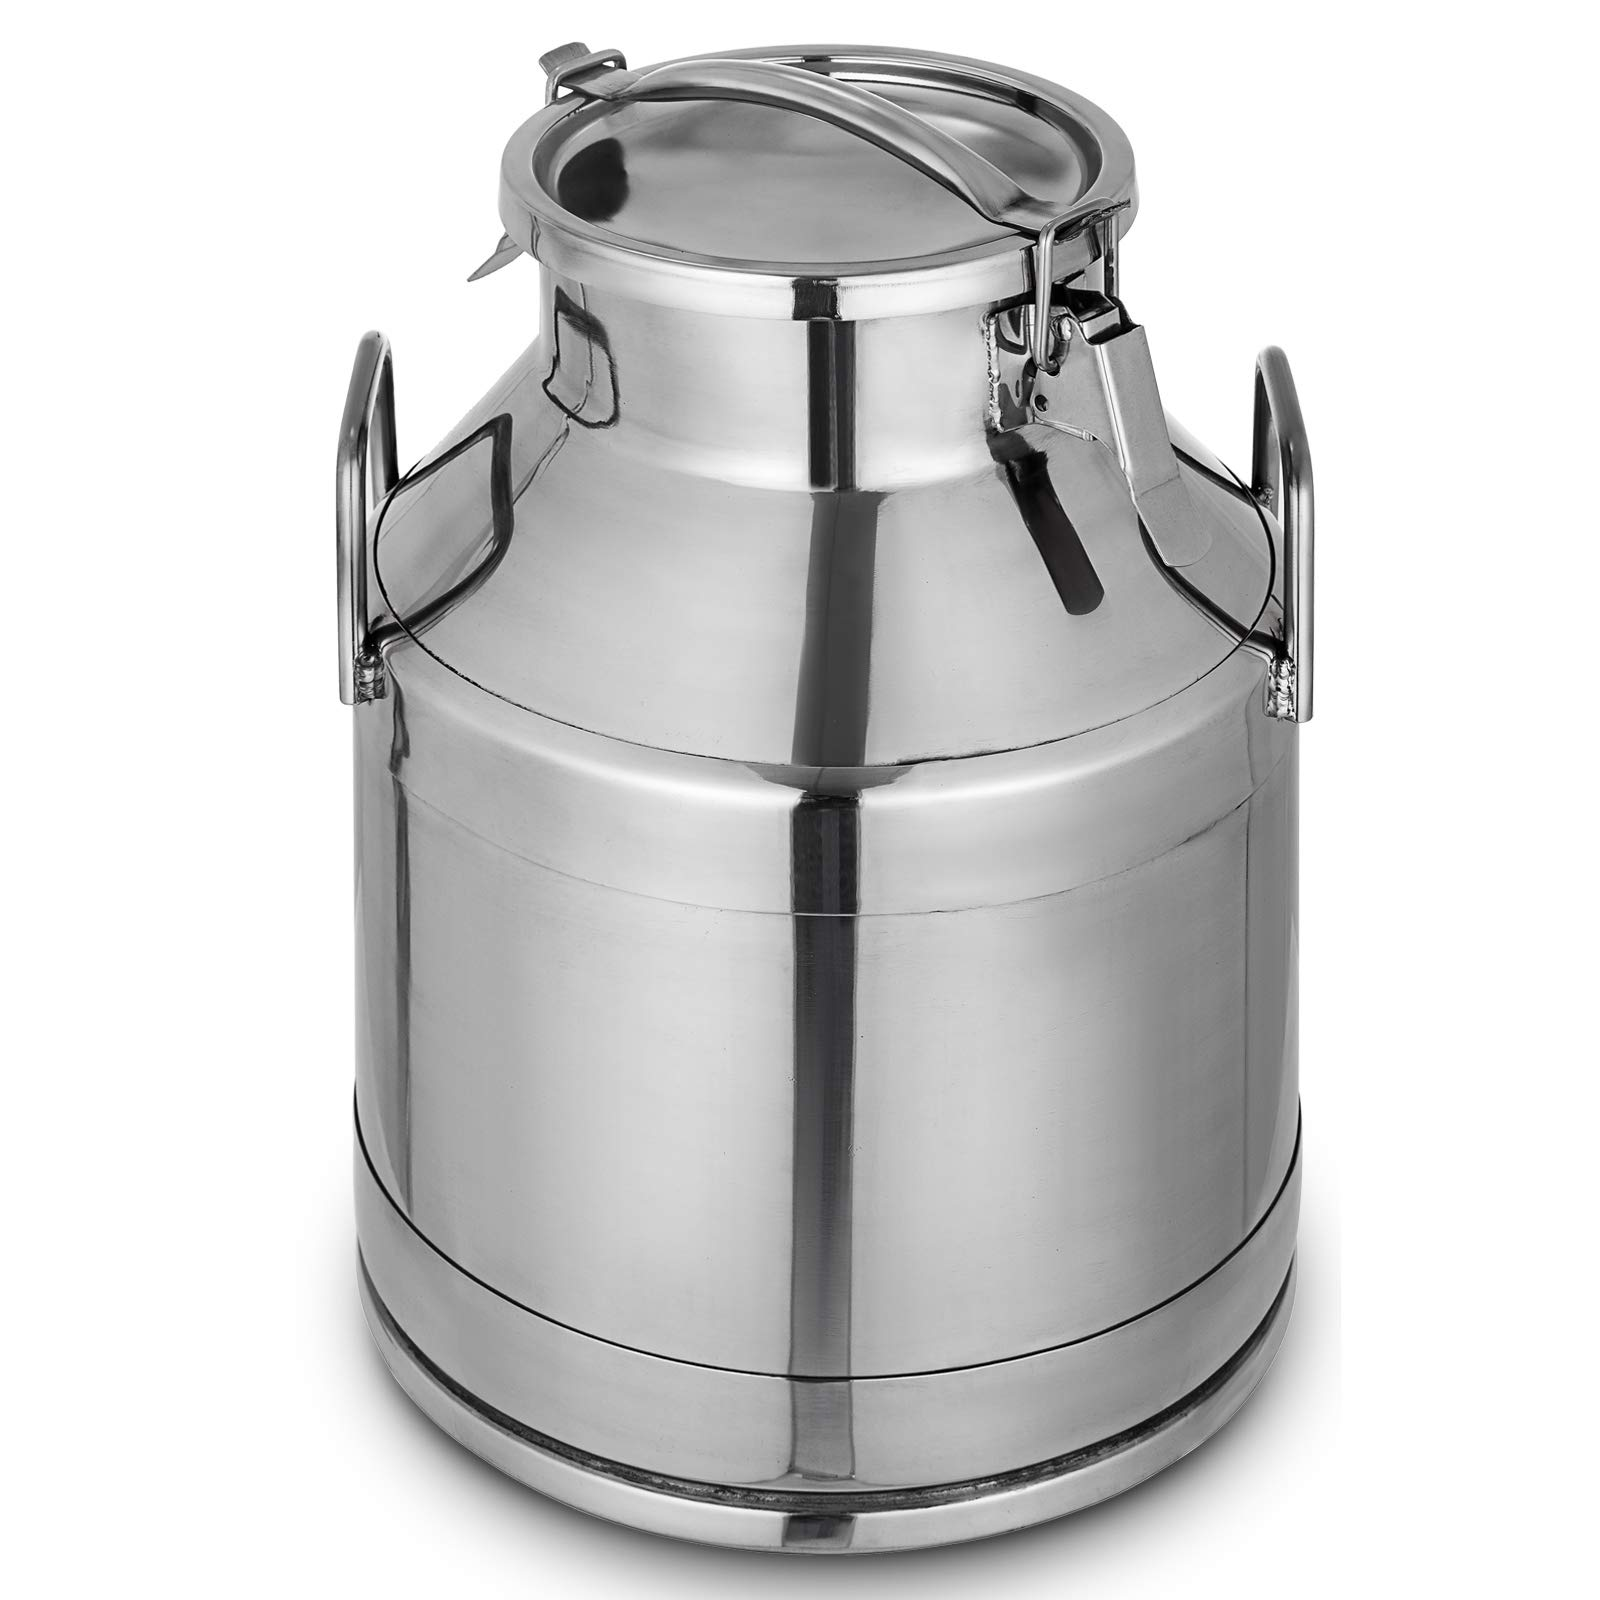 Mophorn Stainless Steel Milk Can 20 Liter Milk bucket Wine Pail Bucket 5.25 Gallon Milk Can Tote Jug with Sealed Lid Heavy Duty by Mophorn